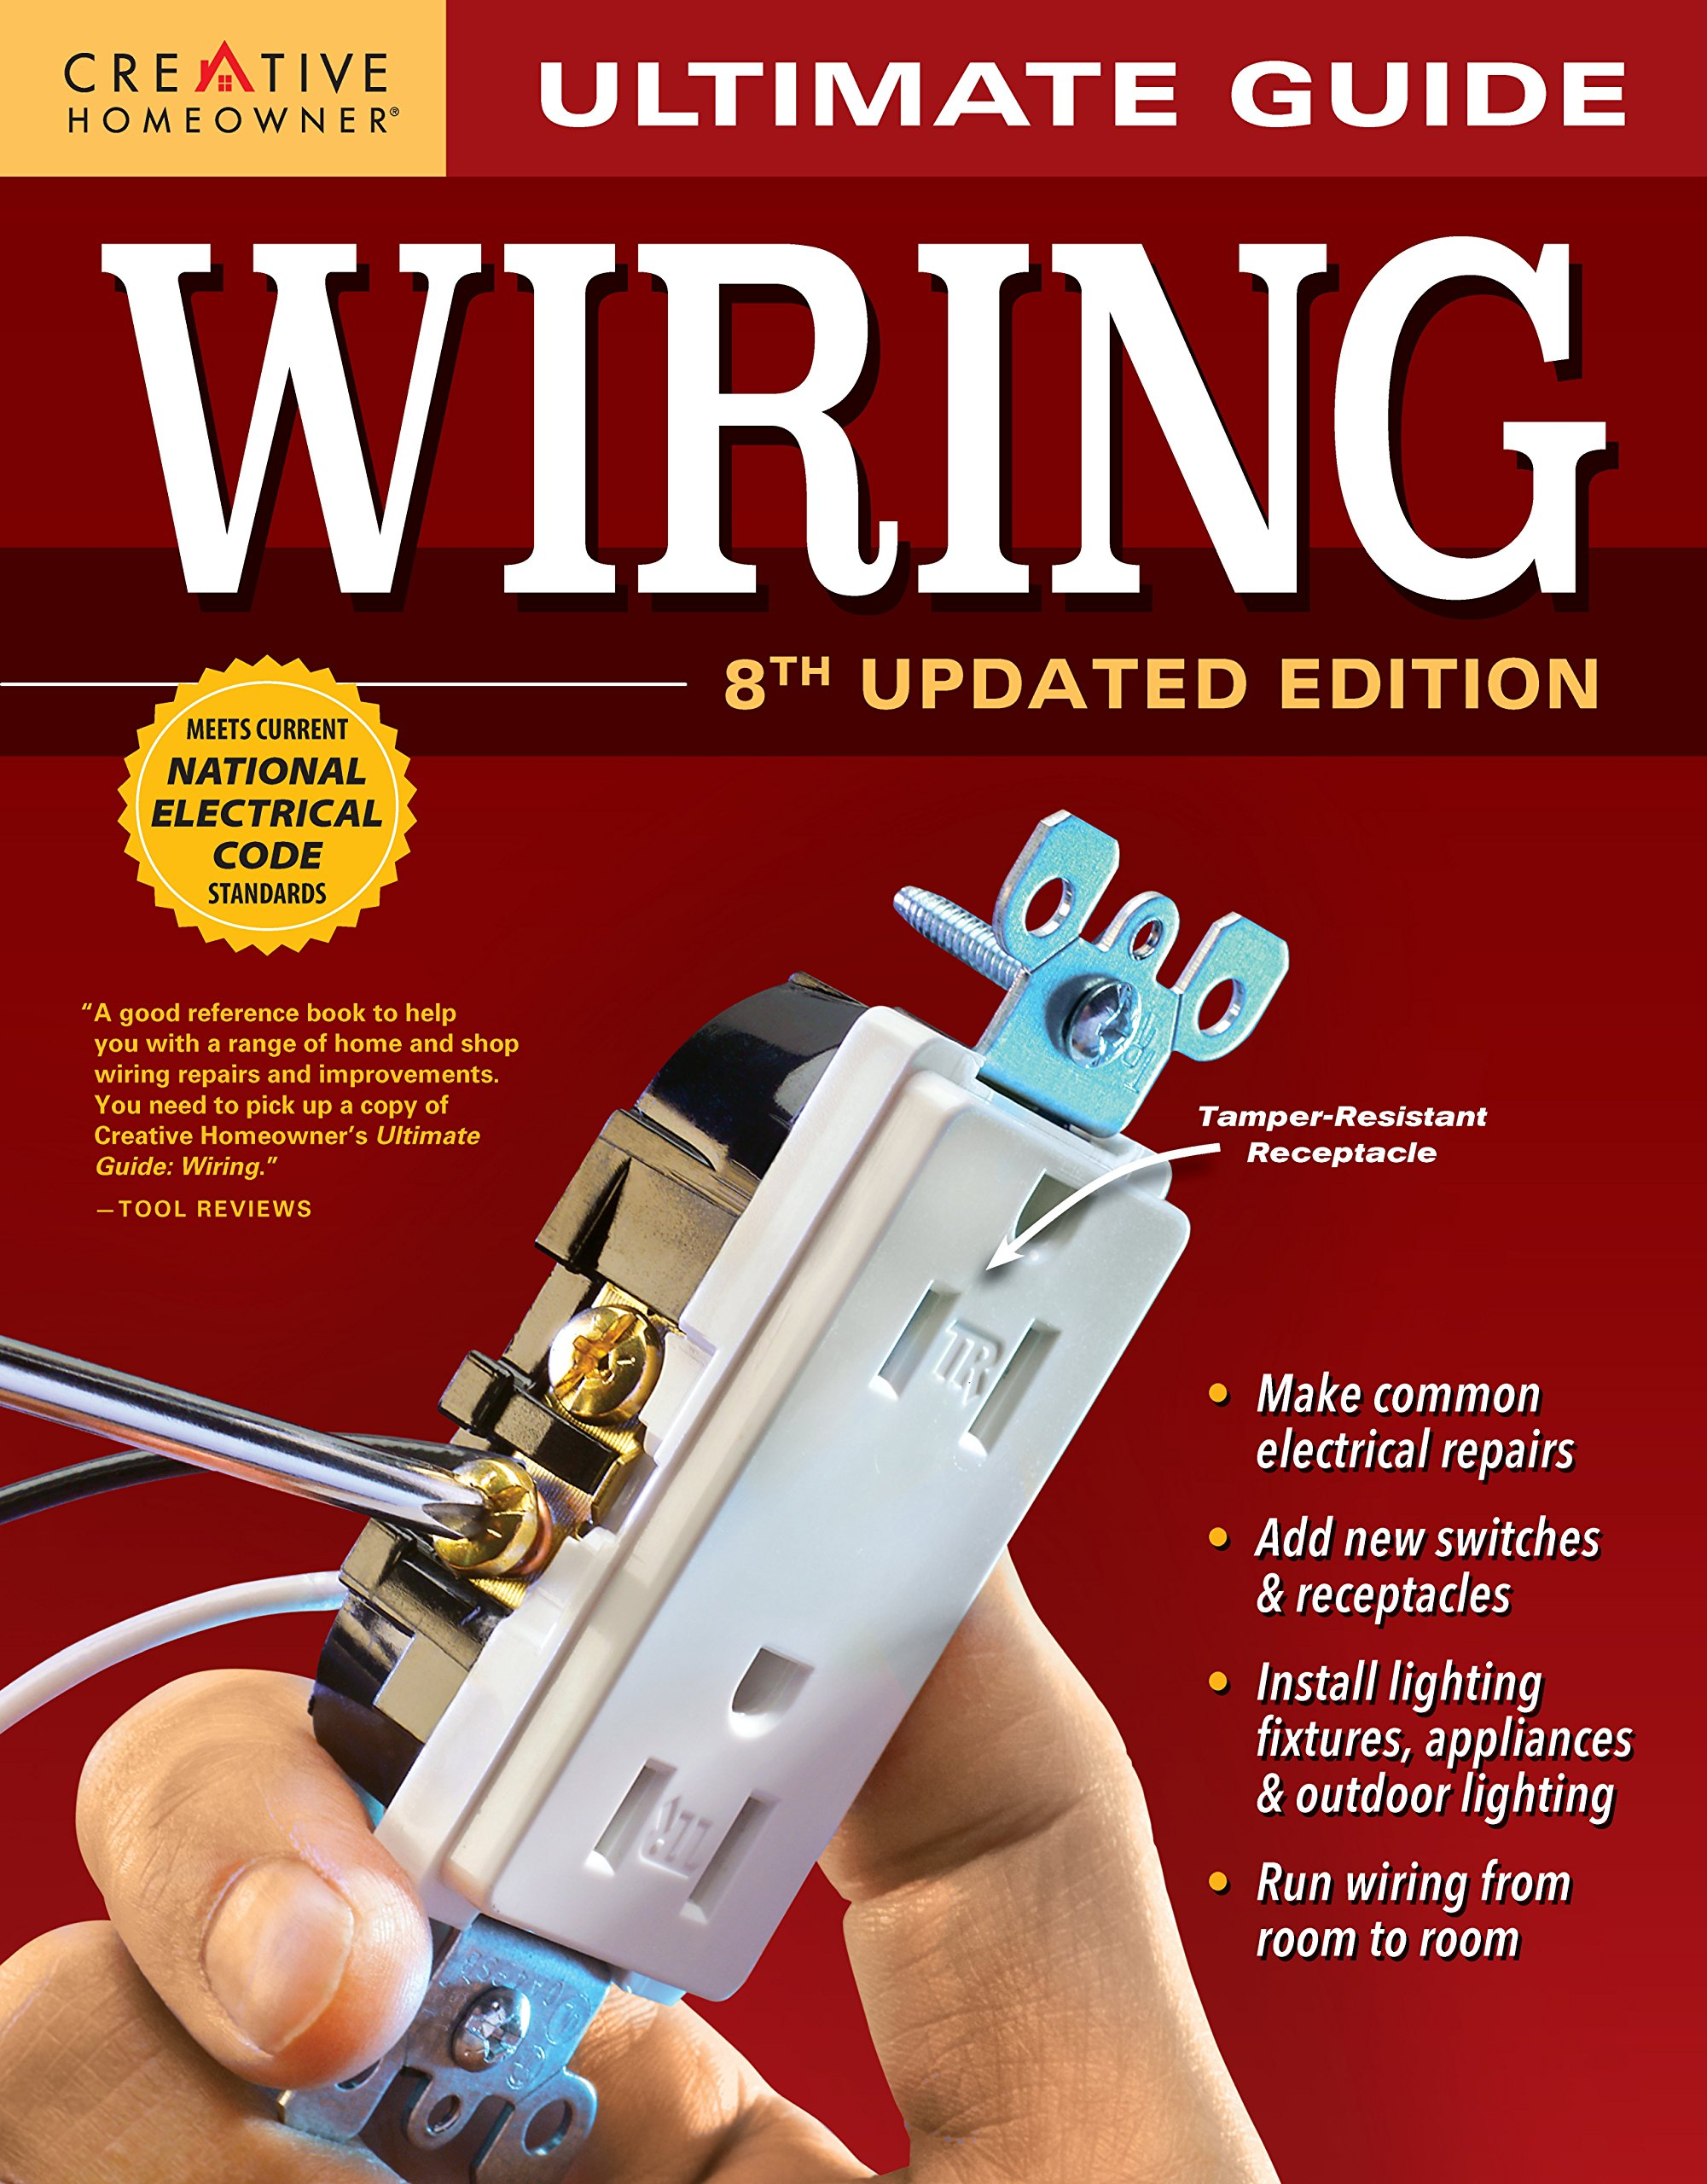 Sensational Ultimate Guide Wiring 8Th Updated Edition Creative Homeowner Diy Wiring Cloud Battdienstapotheekhoekschewaardnl